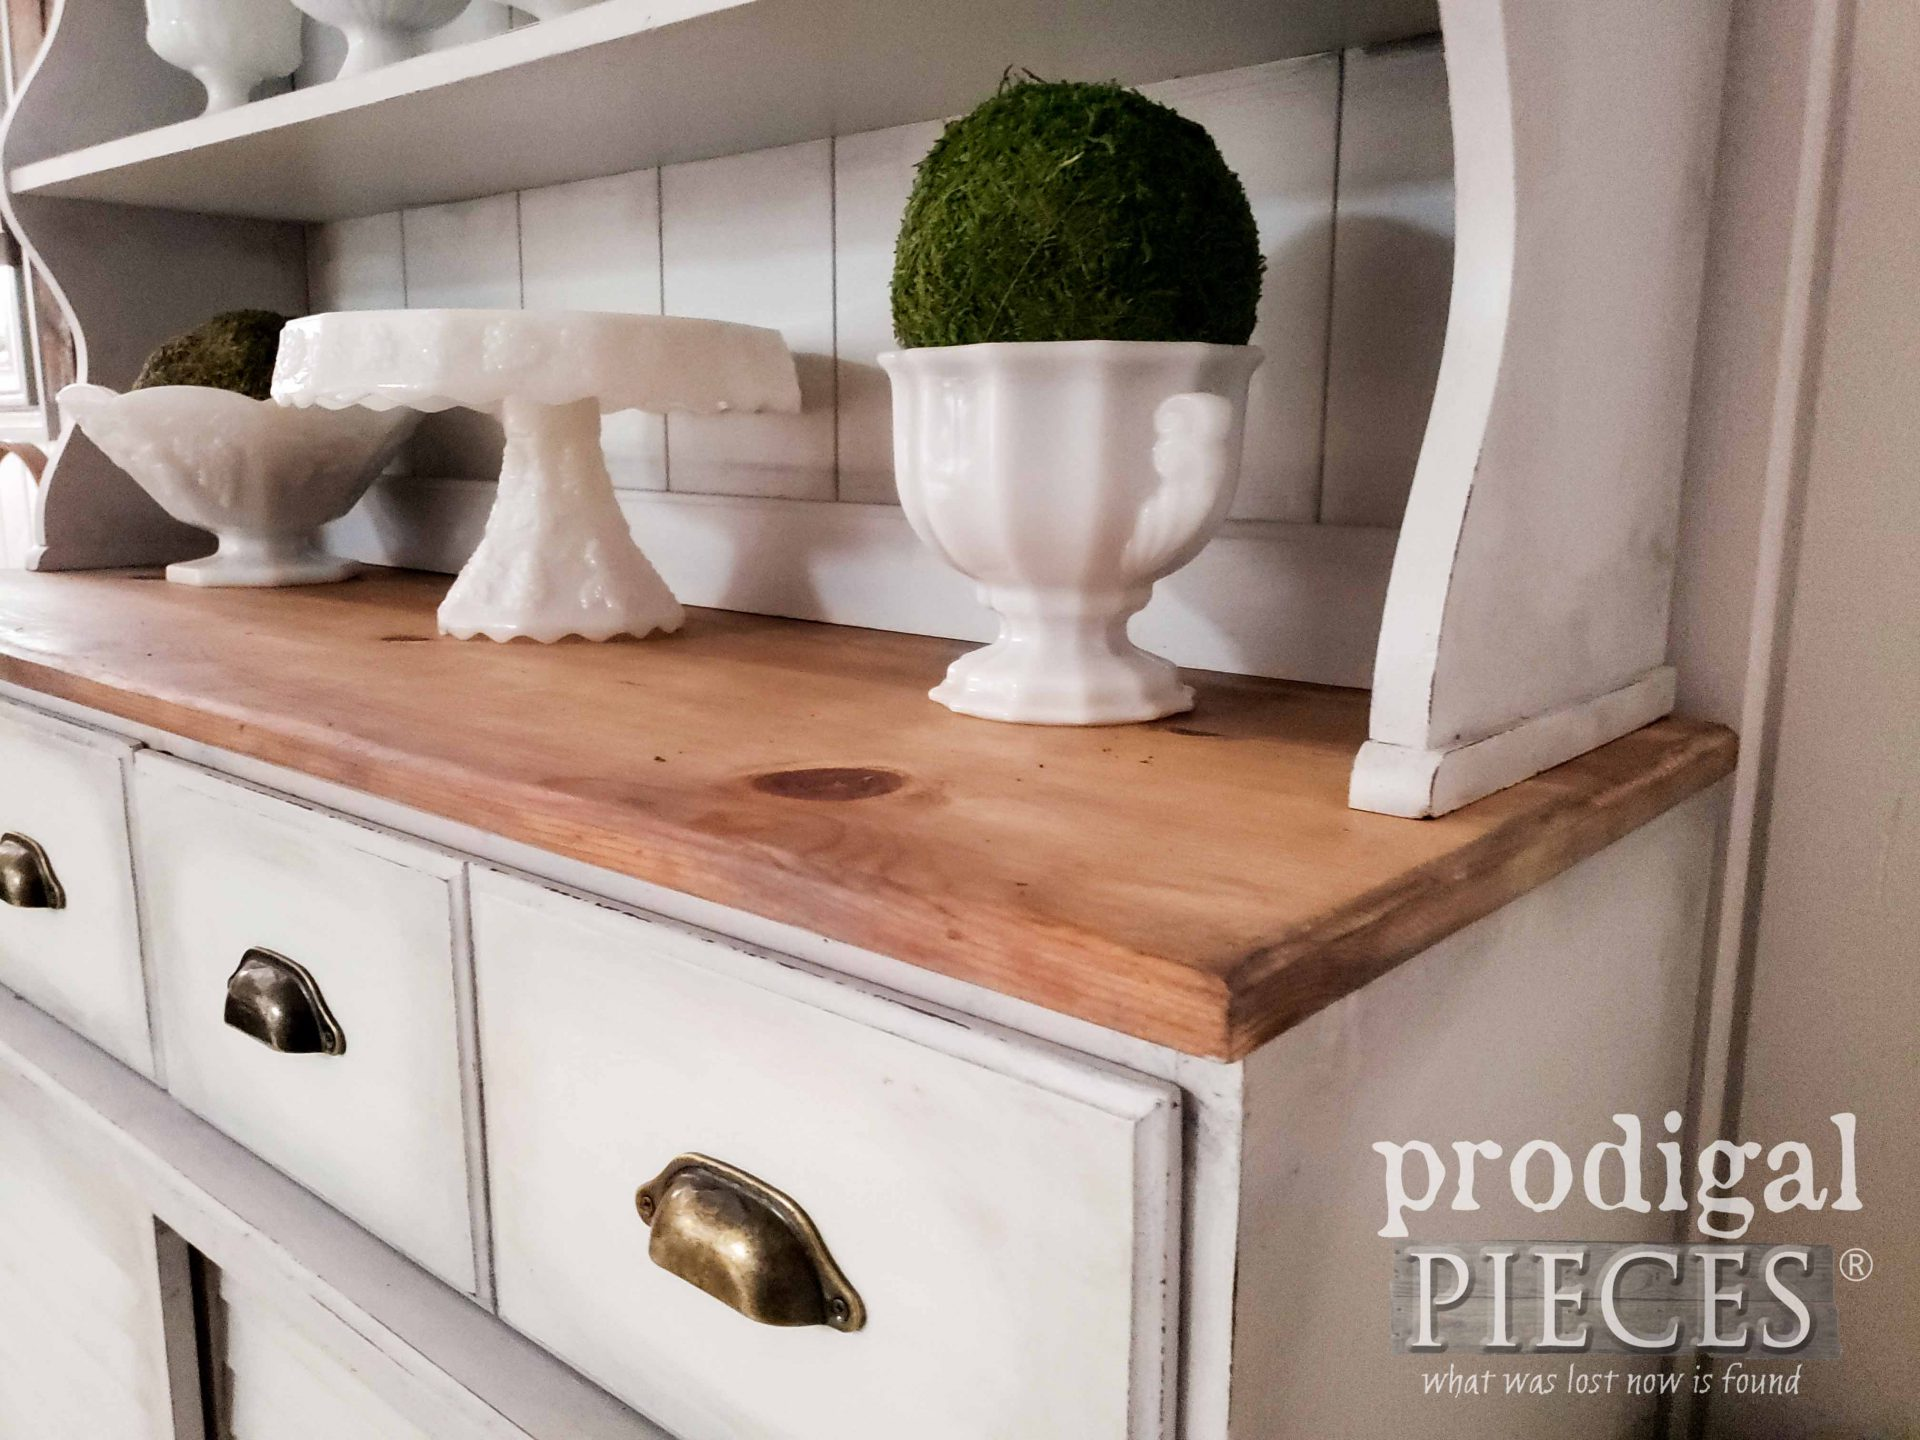 Farmhouse Hutch made of Pine features Scrubbed Wood with Paint Combo by Larissa of Prodigal Pieces | prodigalpieces.com #prodigalpieces #diy #furniture #home #farmhouse #homedecor #paint